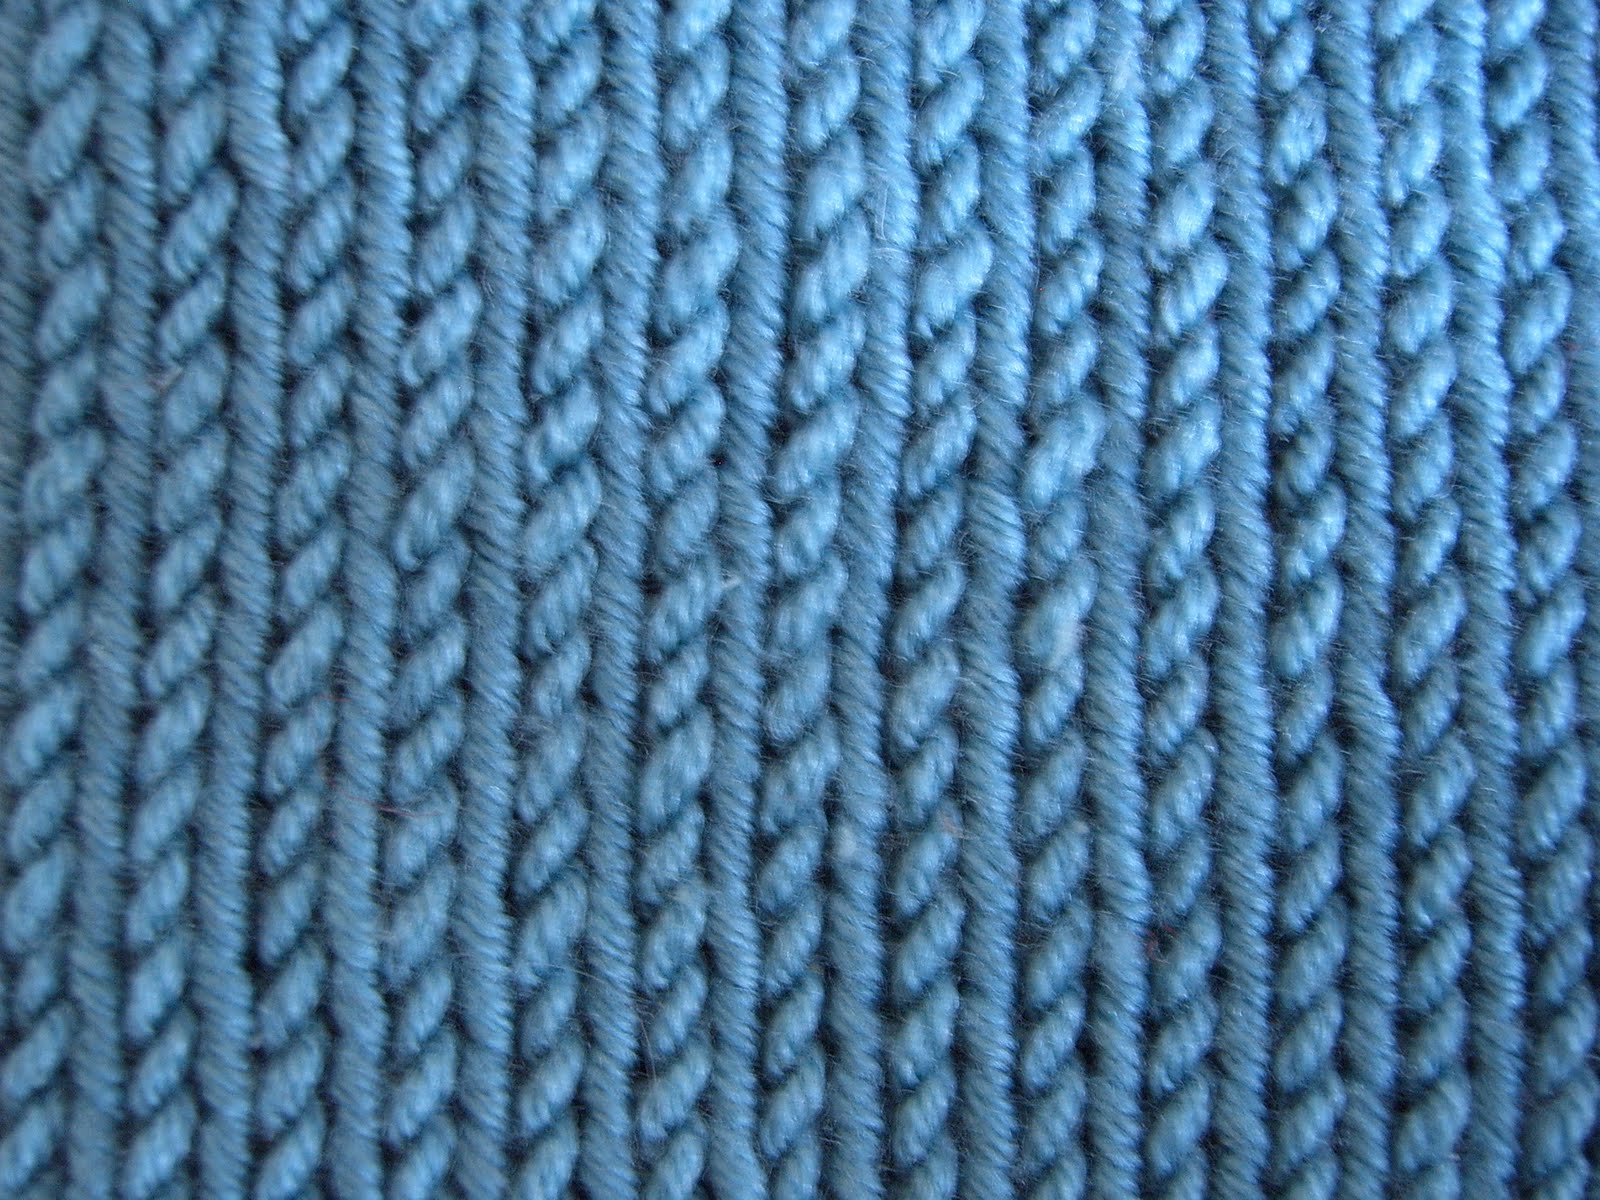 Knitting How To Cast On Stitches At The End Of A Row : KNIT PURL PATTERNS - FREE PATTERNS